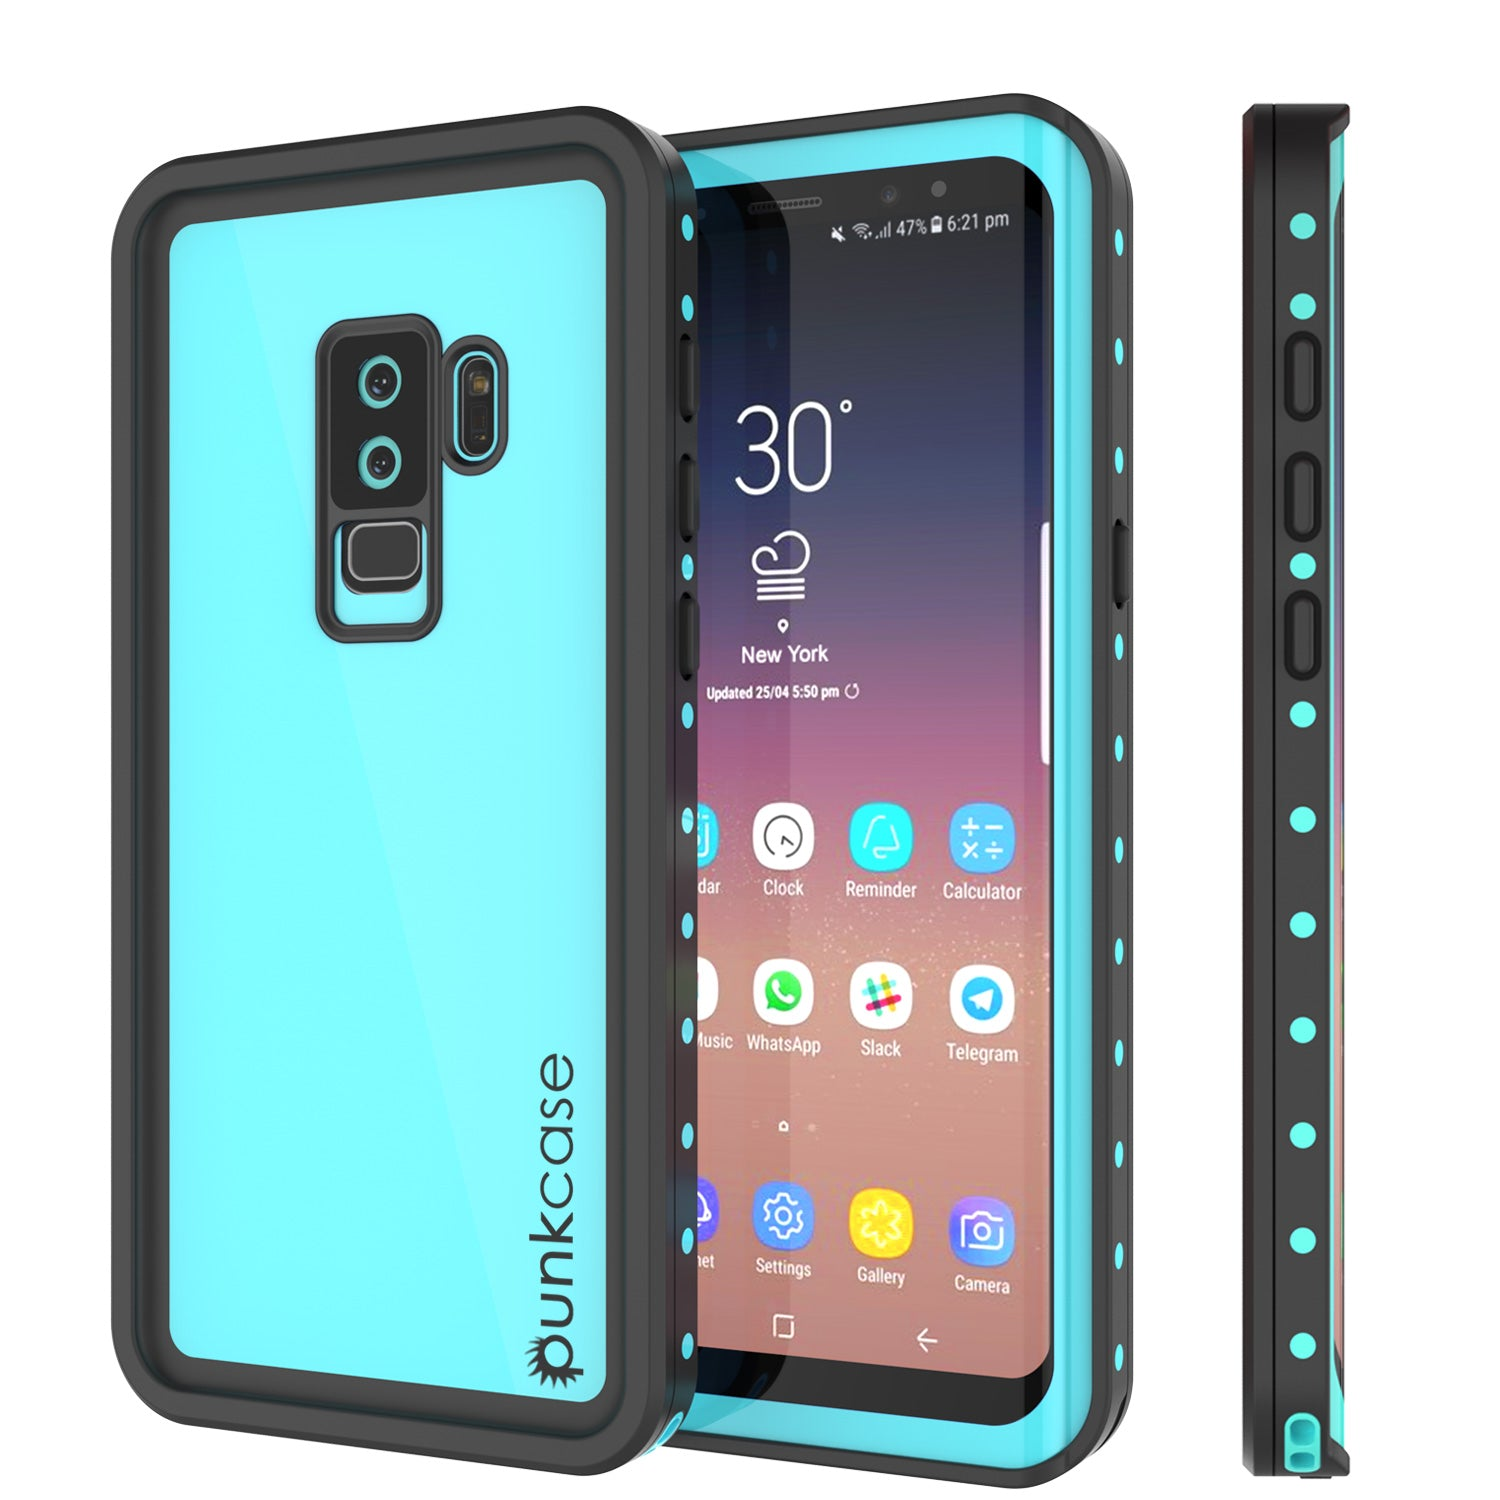 Galaxy S9 Plus Waterproof Case PunkCase StudStar Teal Thin 6.6ft Underwater IP68 Shock/Snow Proof